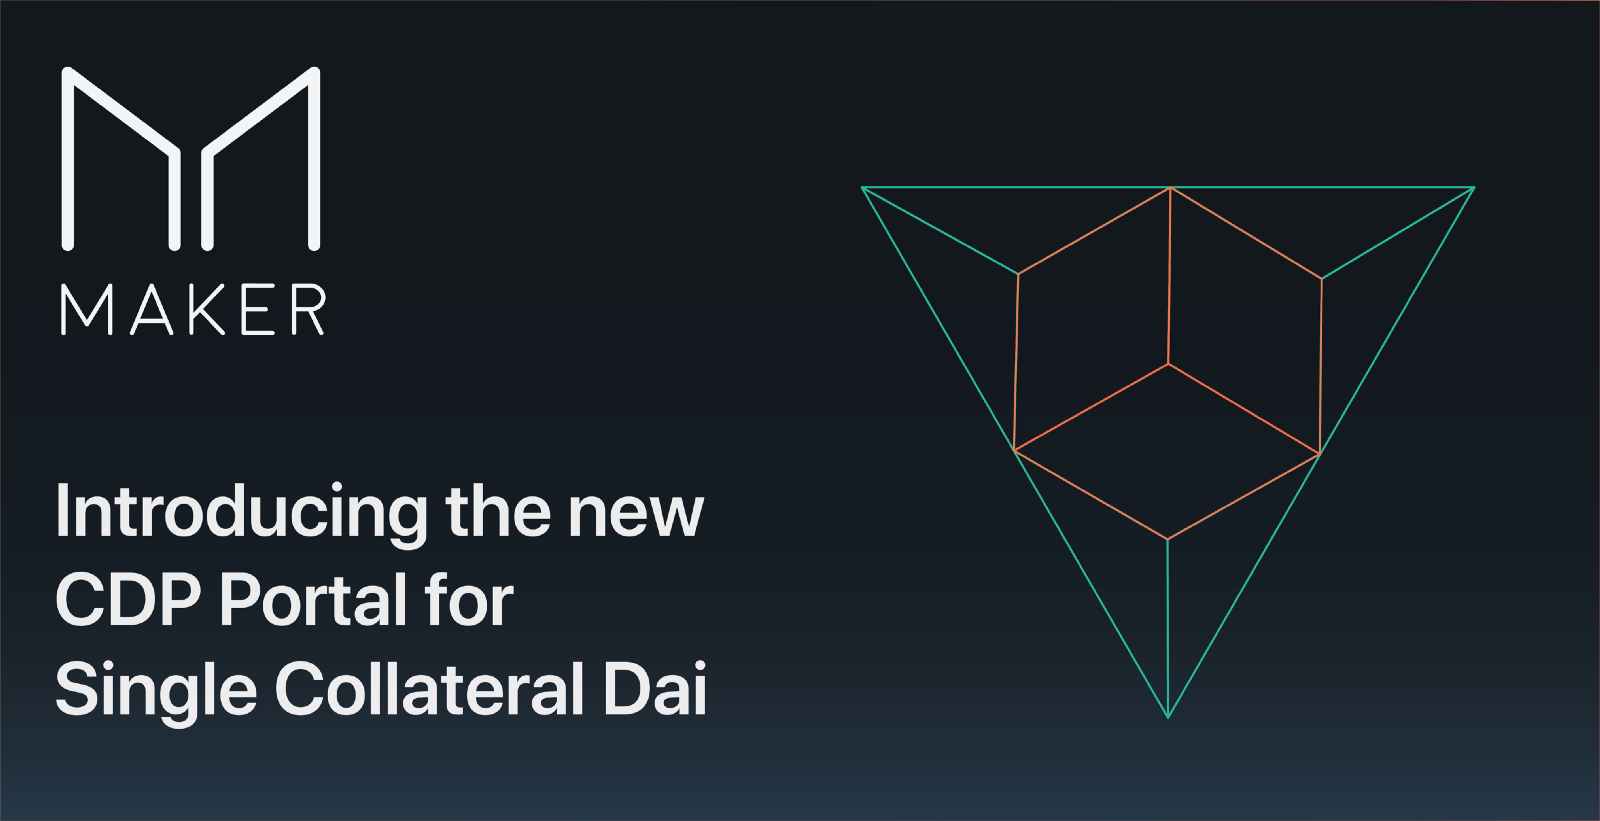 An In-Depth Look at Ethereum's Maker and Dai Stablecoin